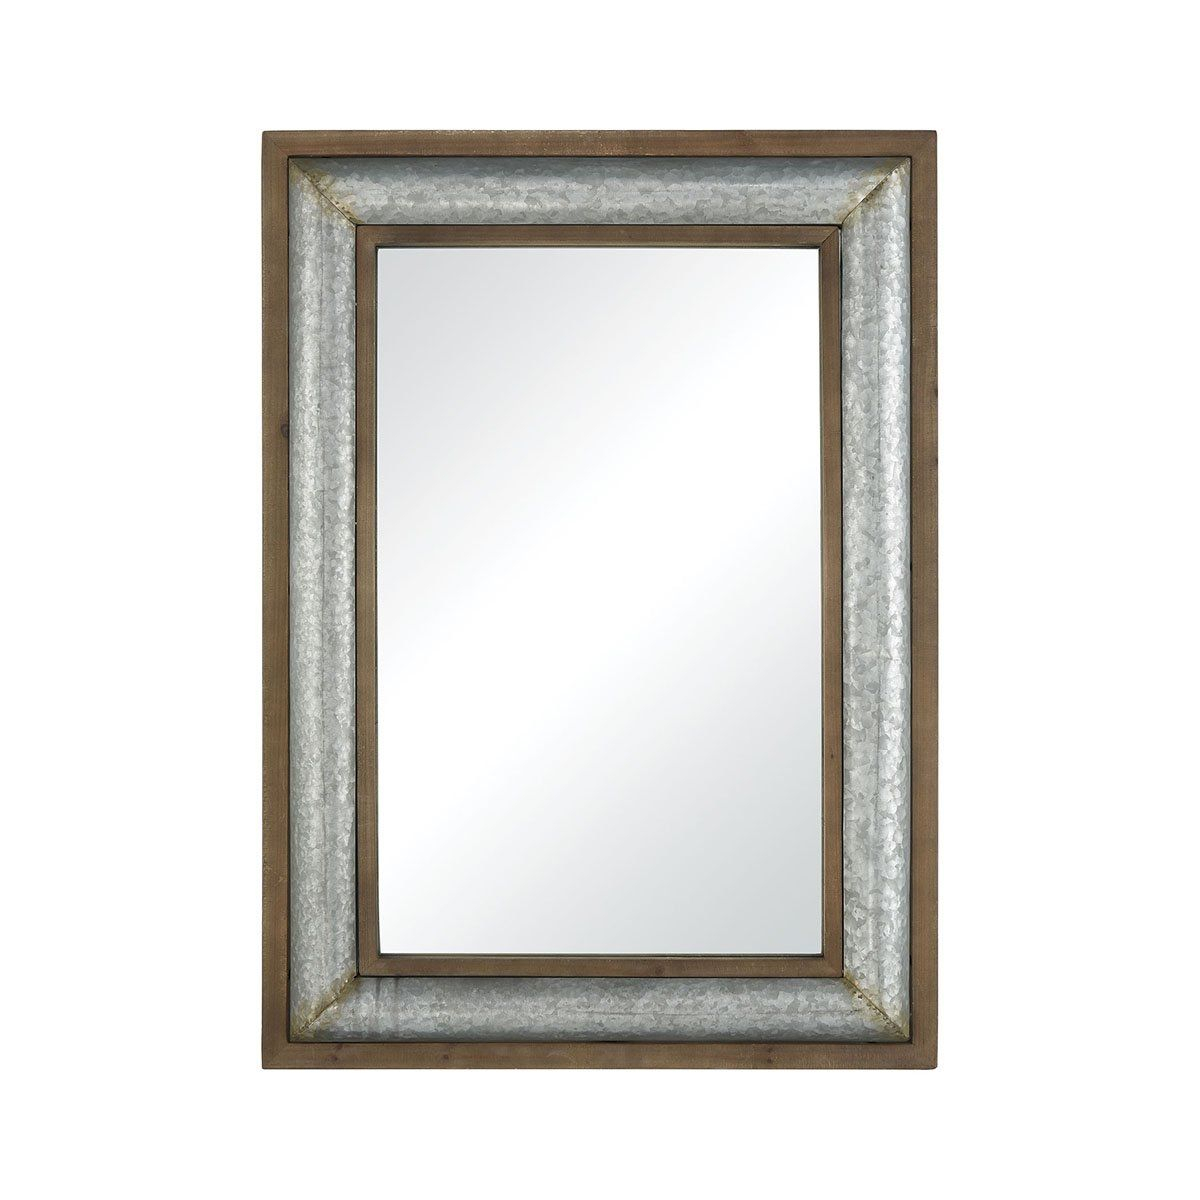 Mirror Beaded 44X56 In 2019 | Mirrors | Mirror, Oversized With Regard To Hogge Modern Brushed Nickel Large Frame Wall Mirrors (View 4 of 20)